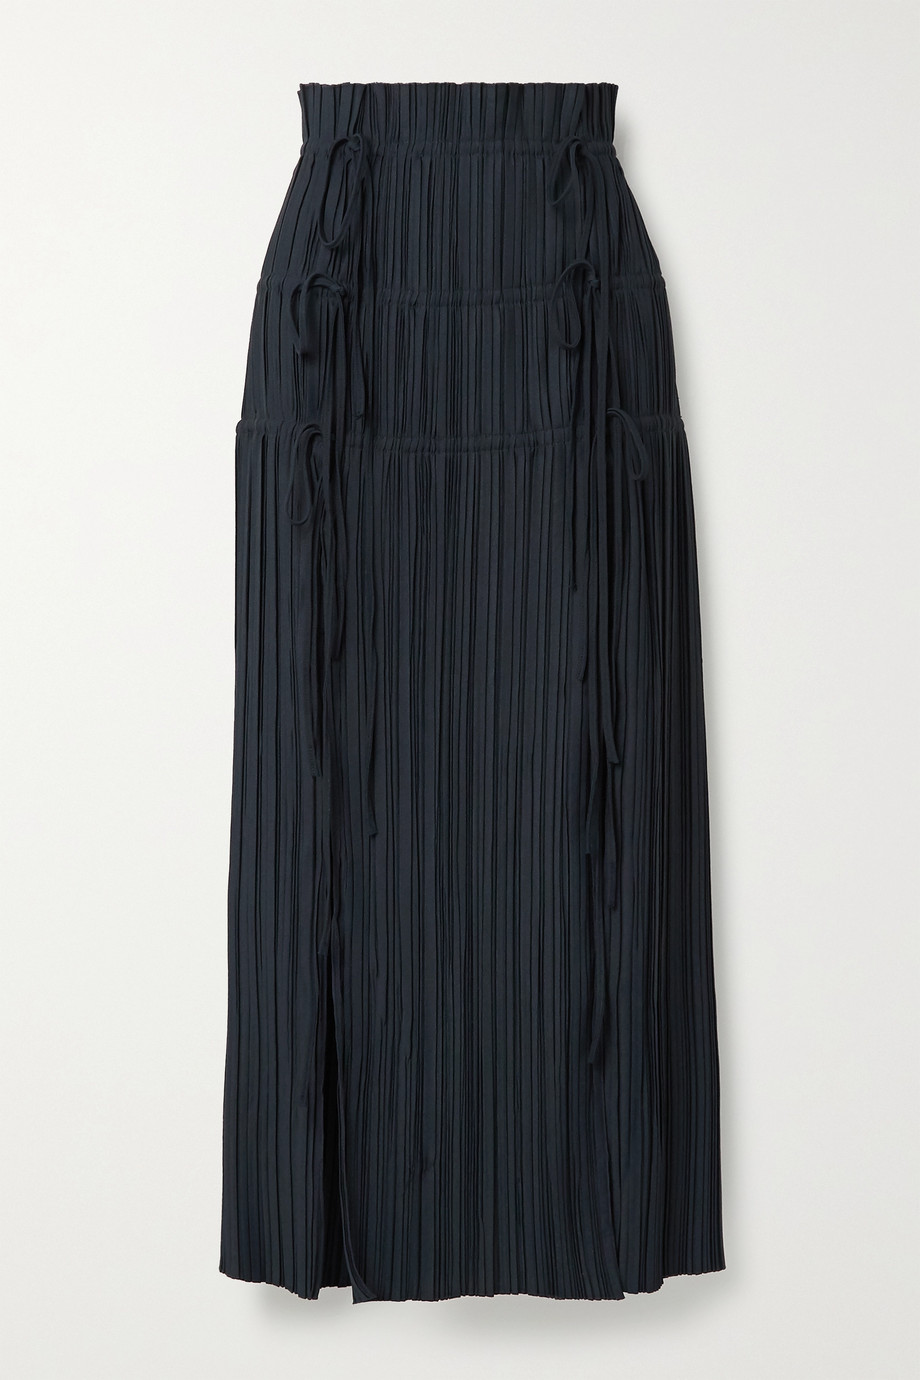 Dion Lee Tie-detailed plissé-crepe maxi skirt